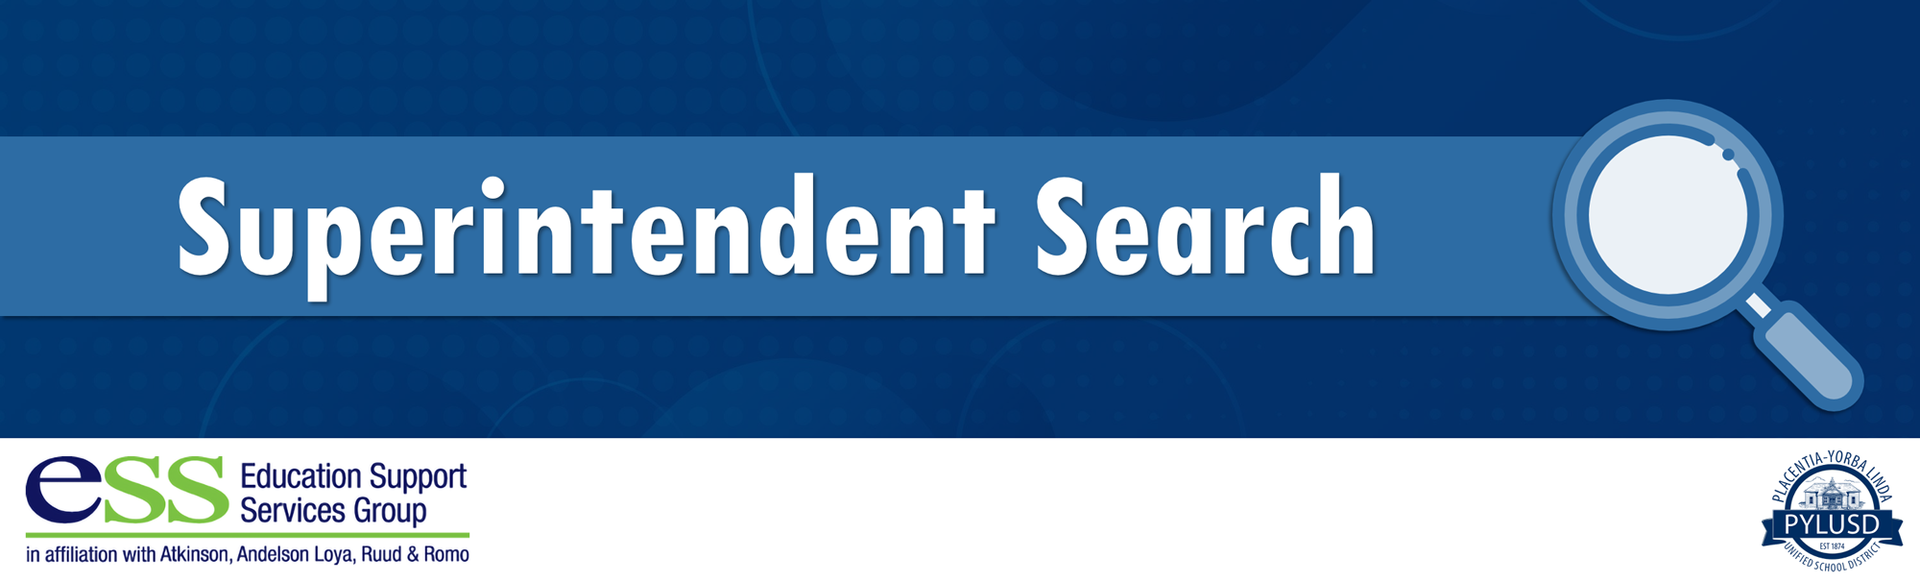 Superintendent Search banner.